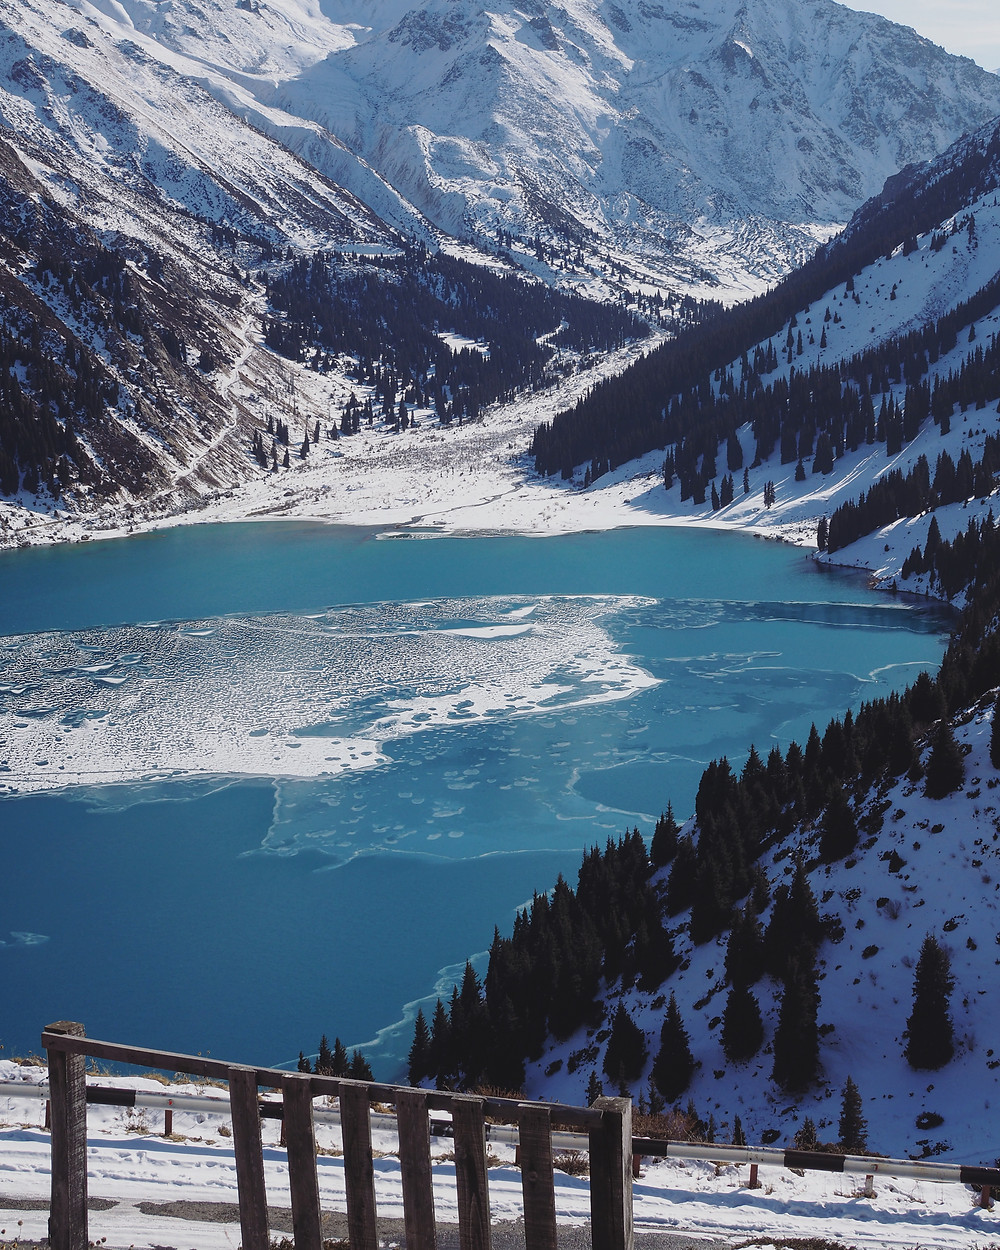 Big Almaty Lake 近观